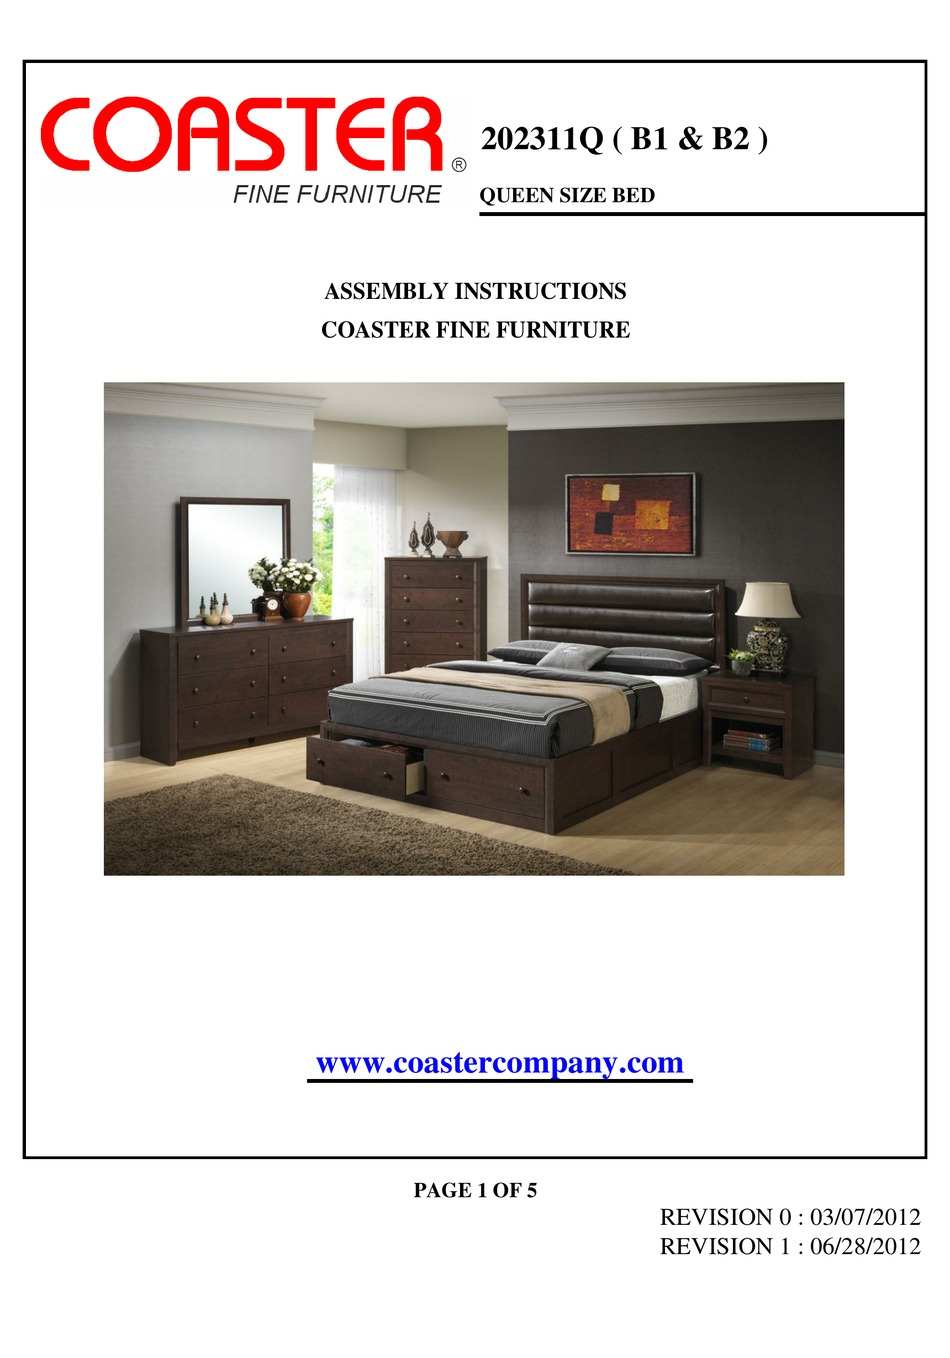 Coaster Company Furniture Assembly Instructions Download coaster bedroom furniture